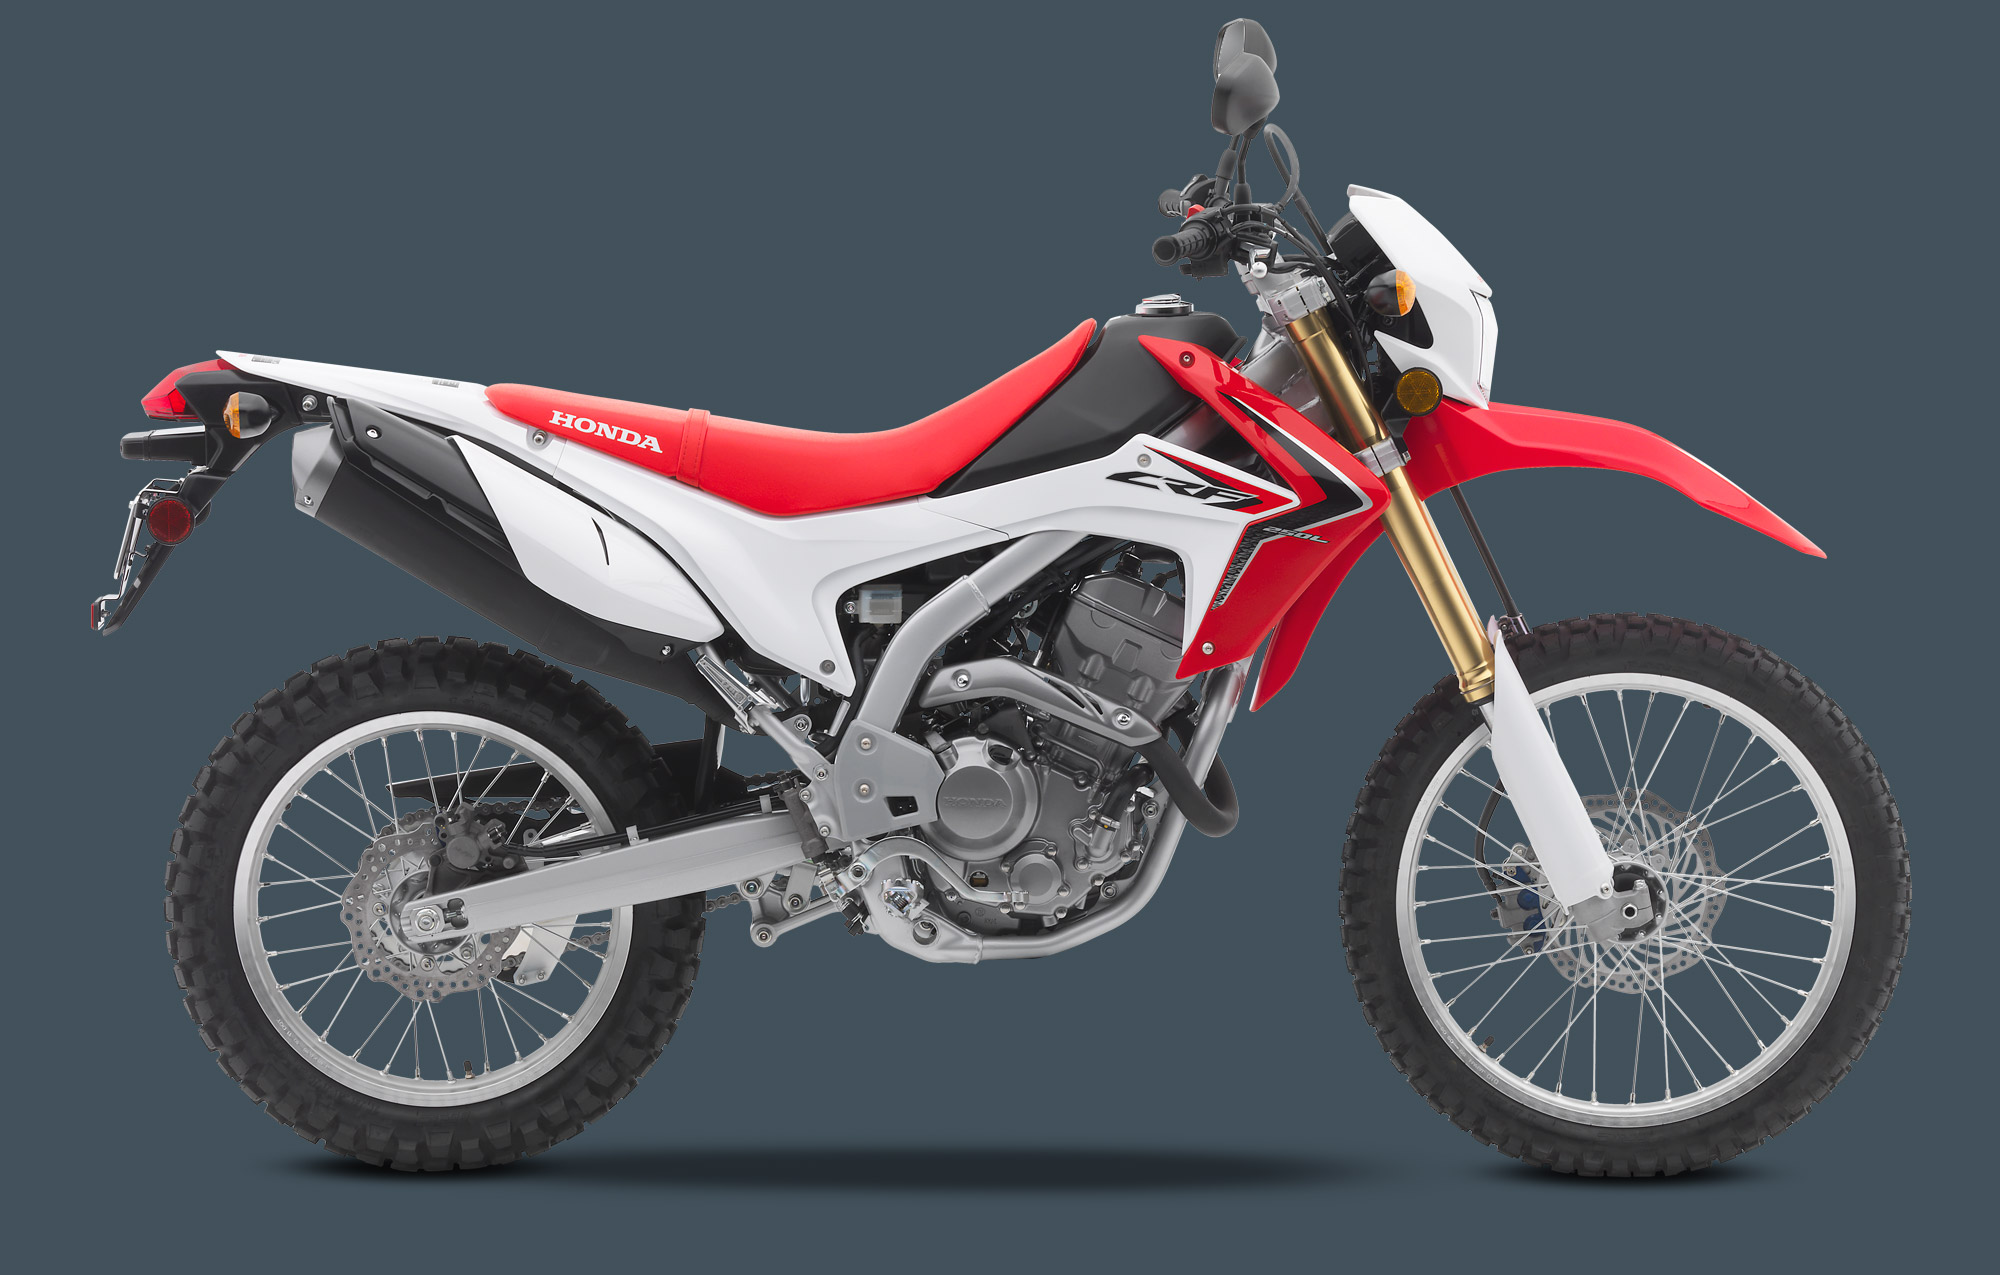 2014 honda crf250l expected in june autoevolution. Black Bedroom Furniture Sets. Home Design Ideas